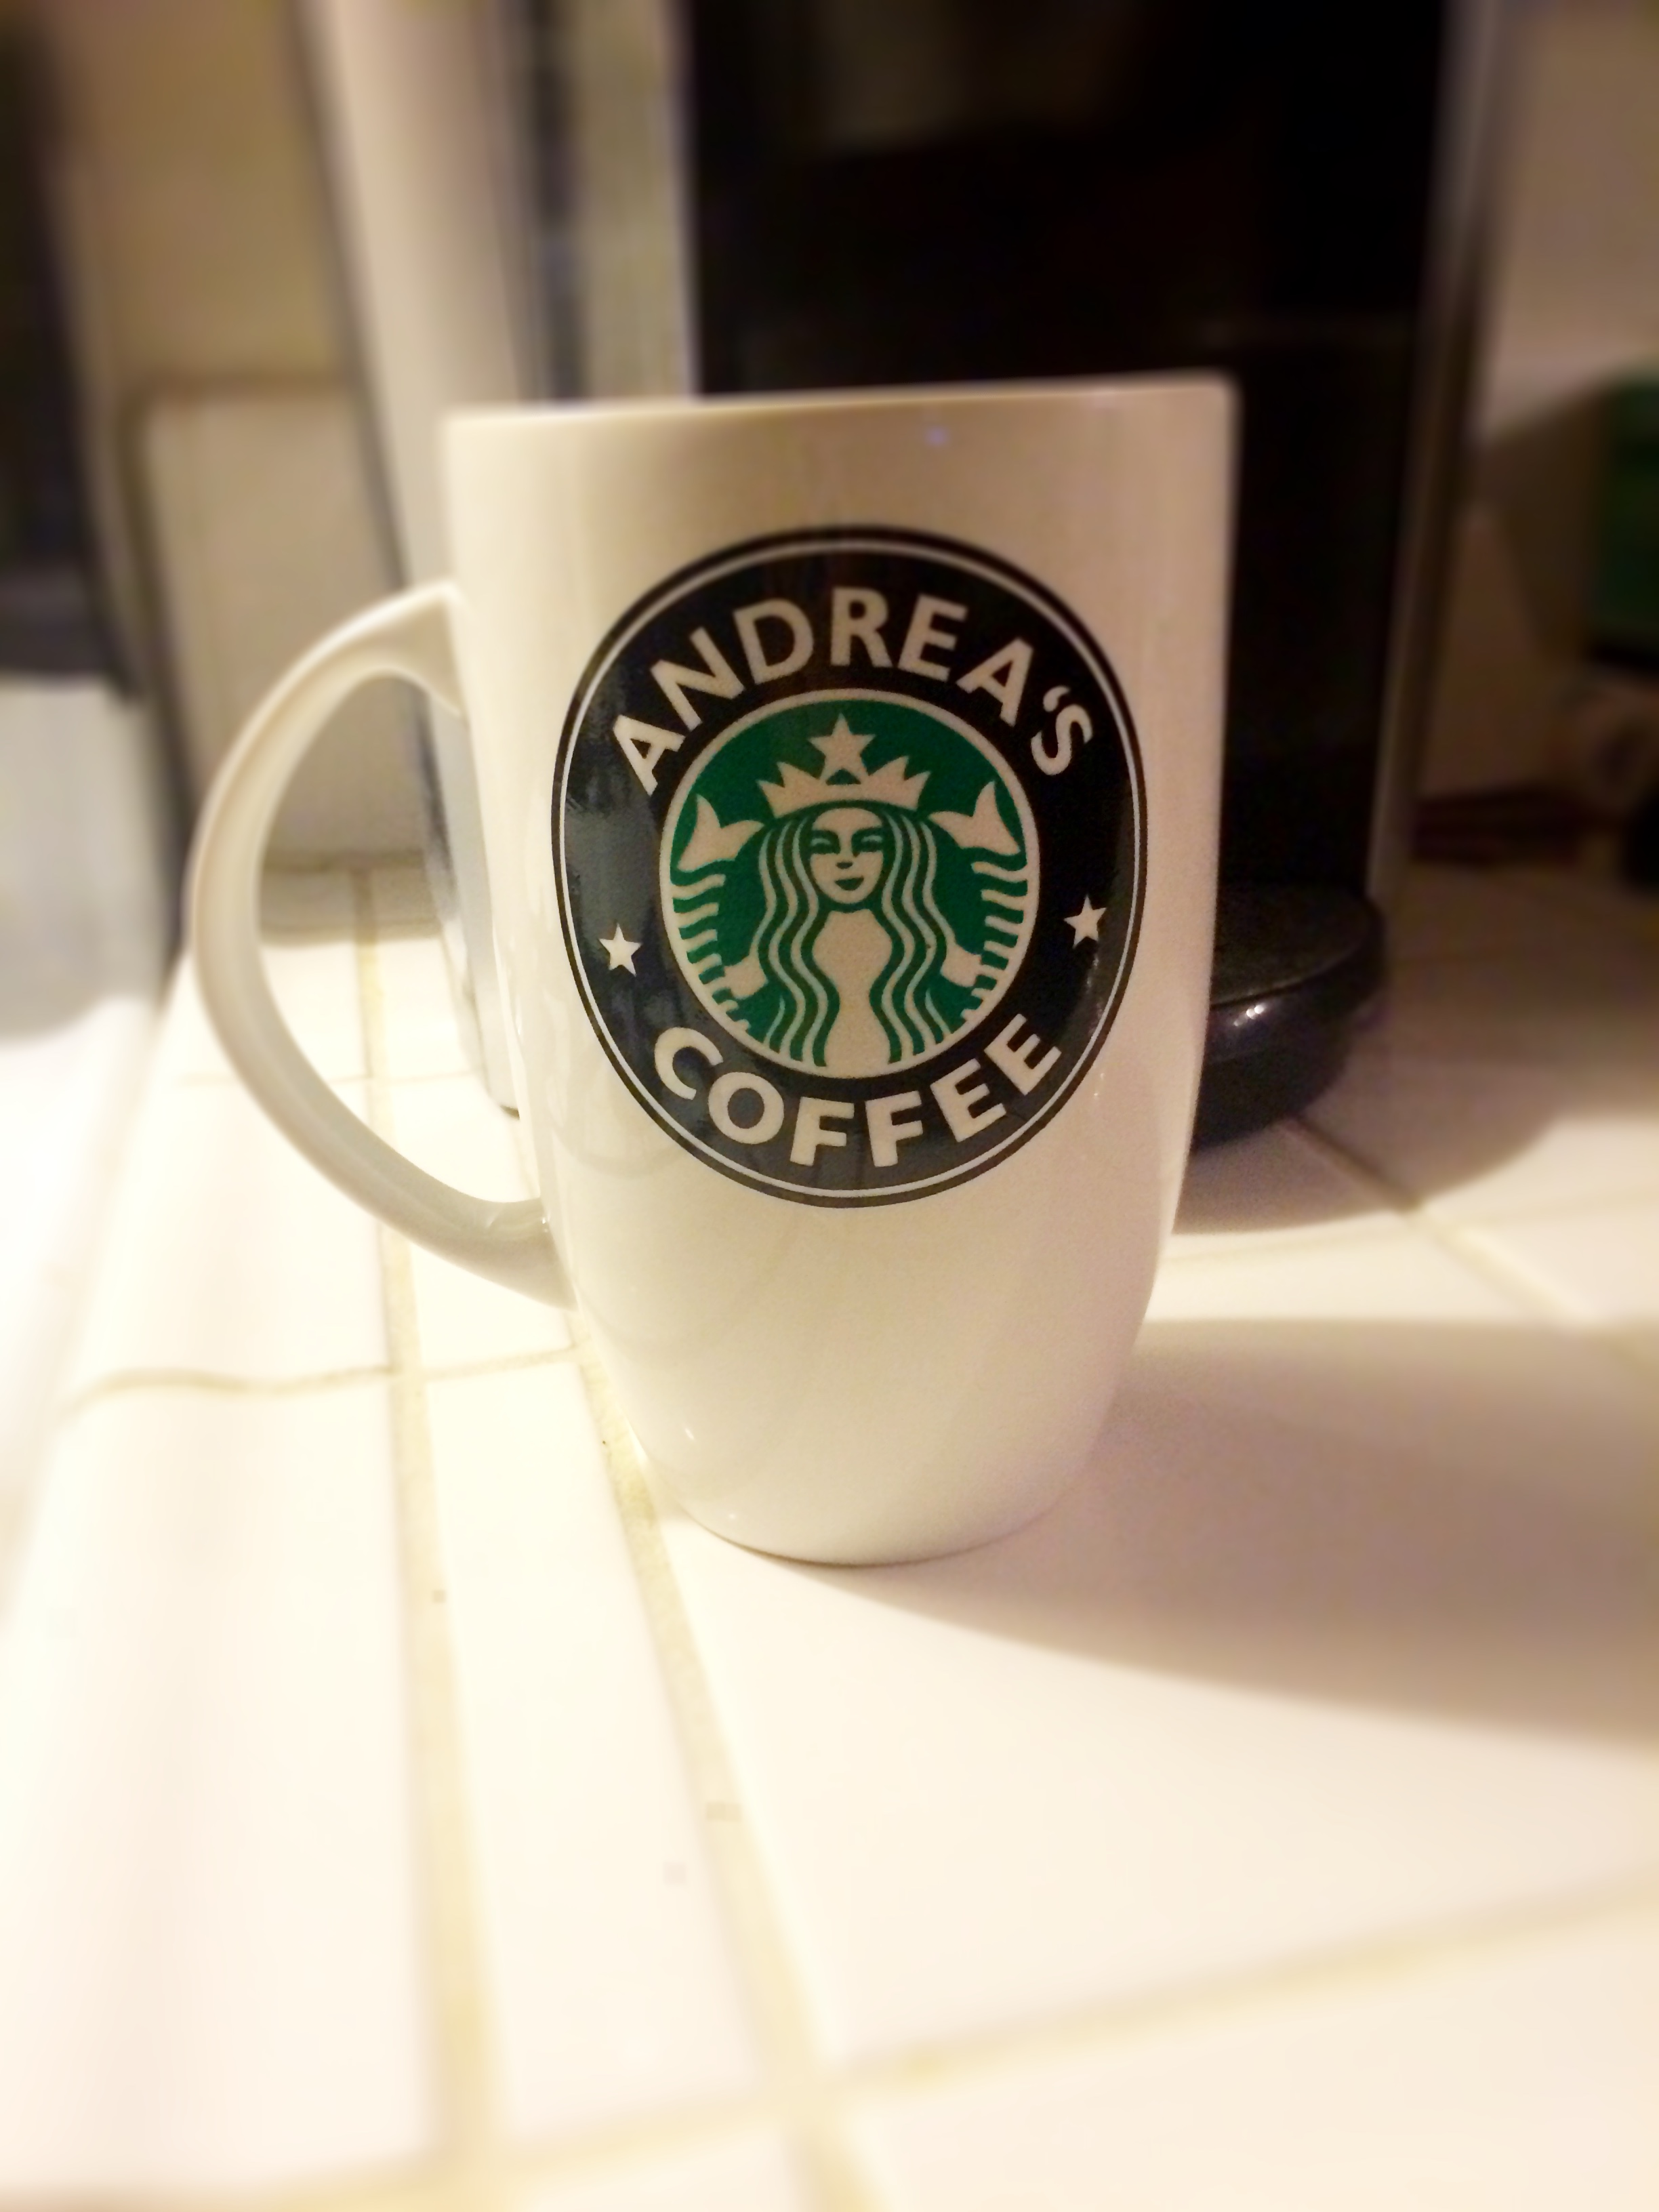 Andrea's Coffee